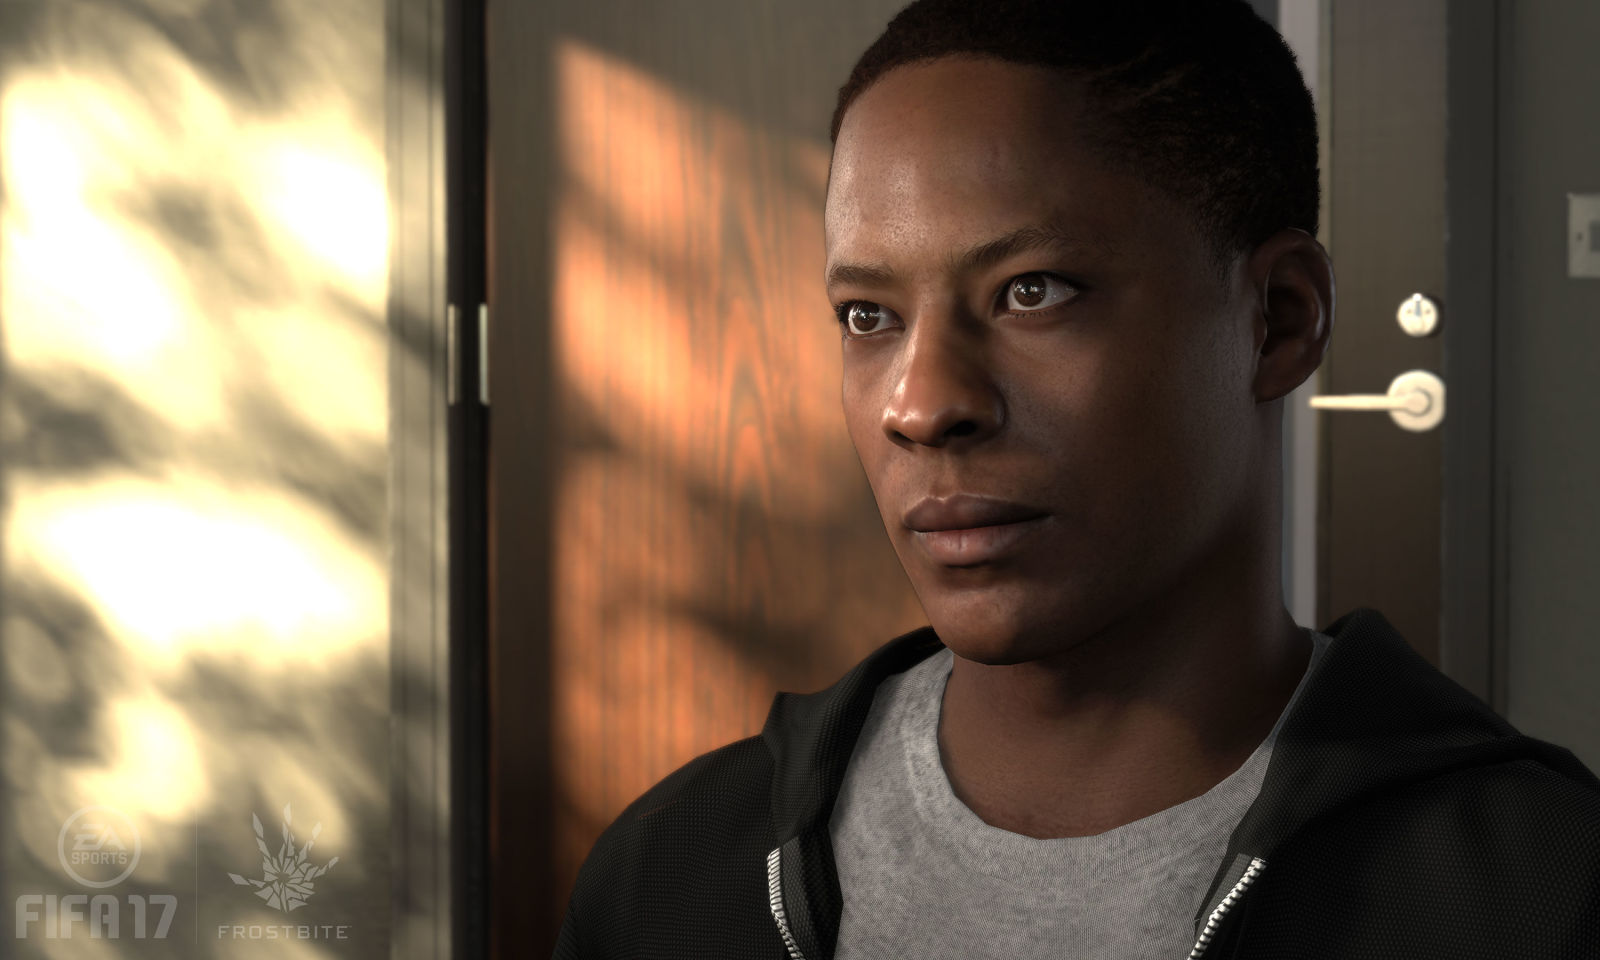 FIFA 17 The Journey Alex Hunter Alex Hunter FIFA 17 The Journey - Who Is Alex Hunter? FIFA 17 The Journey Alex Hunter